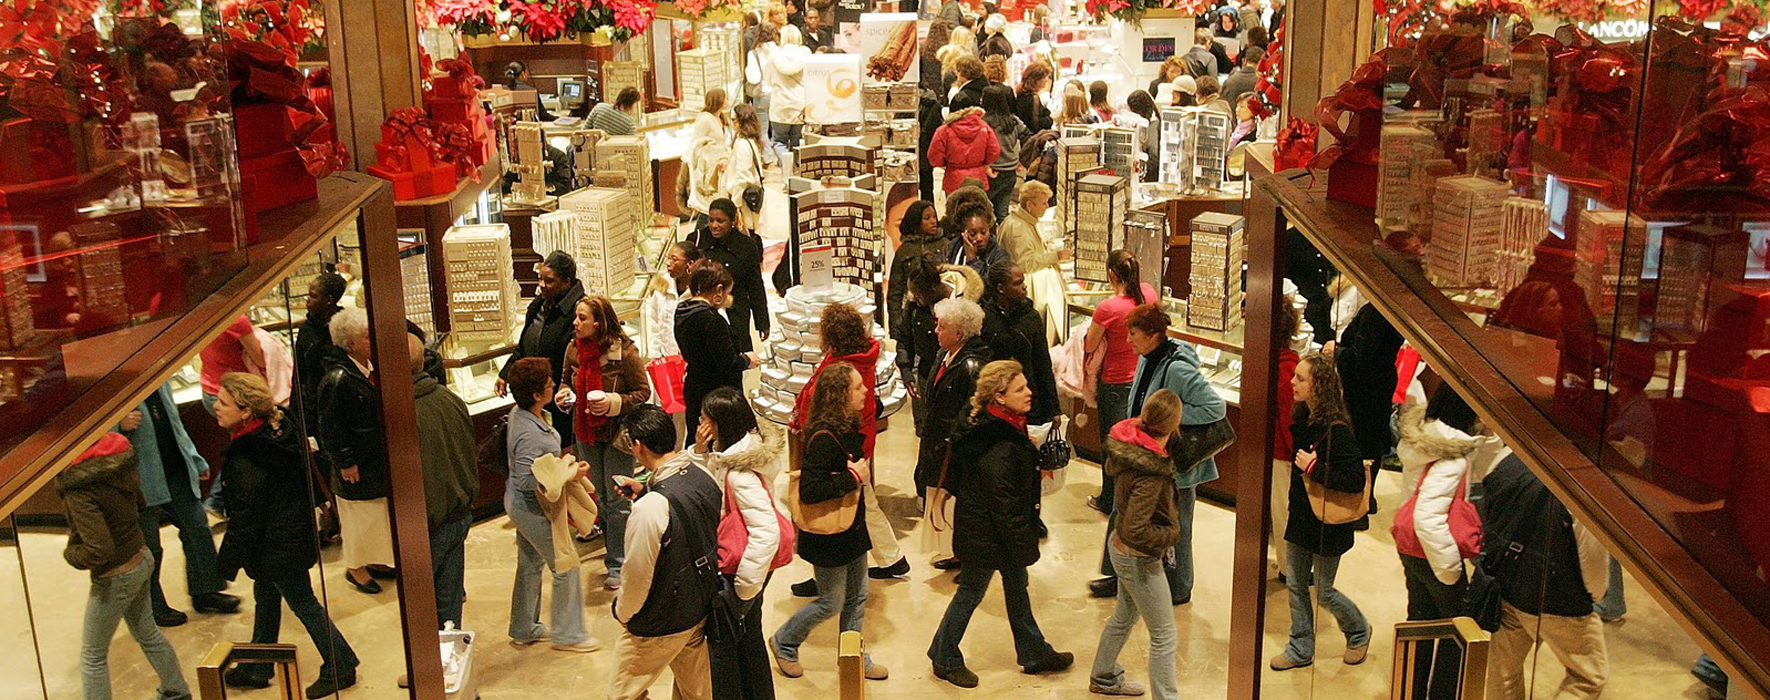 Top 3 Things You Need to Know About Consumer Shopping This Holiday Season